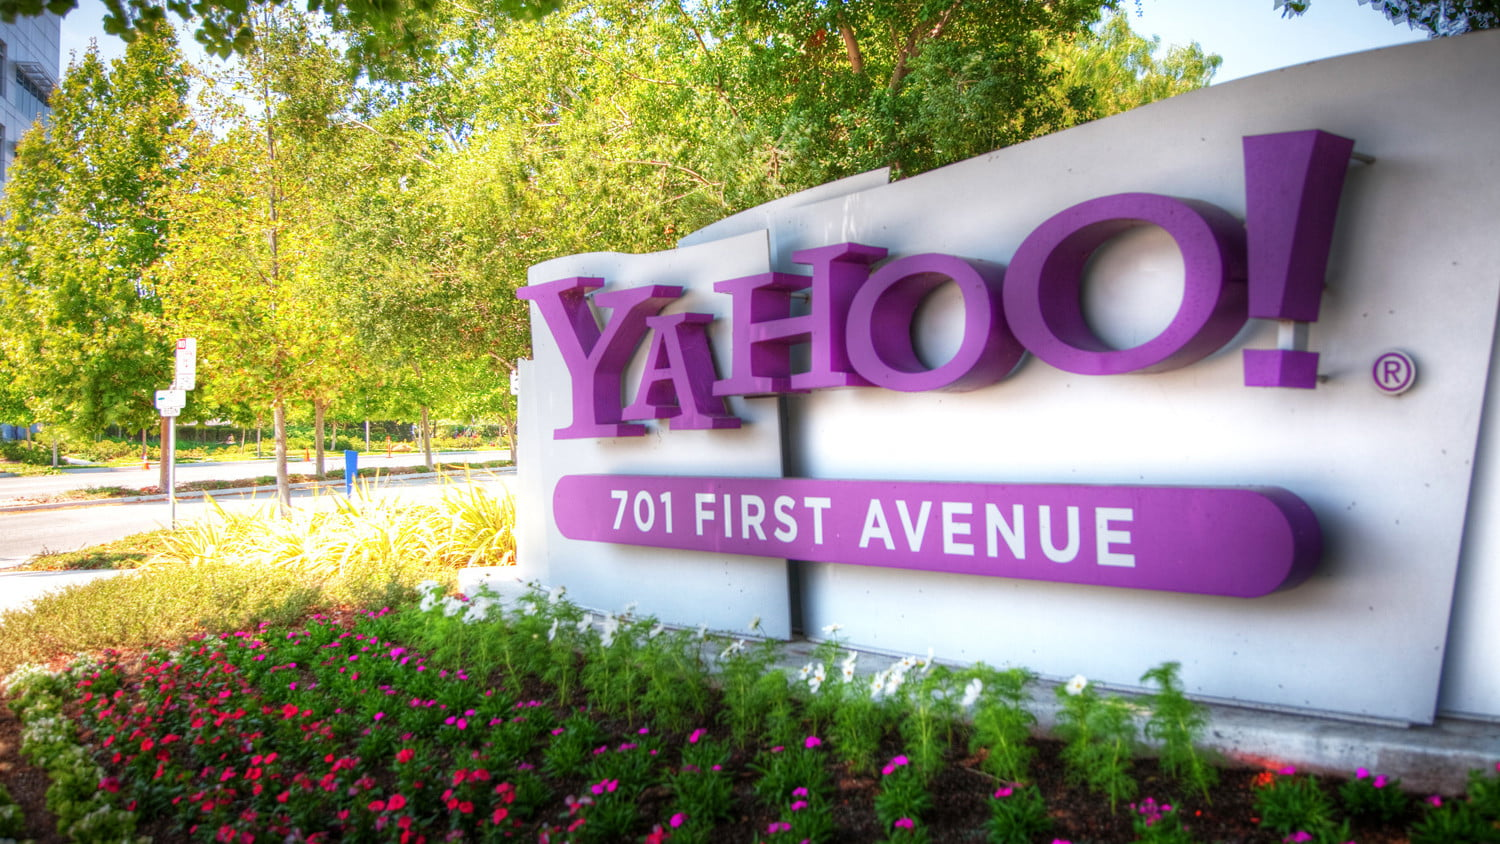 Here's how to claim your $100 from Yahoo's massive data breach settlement